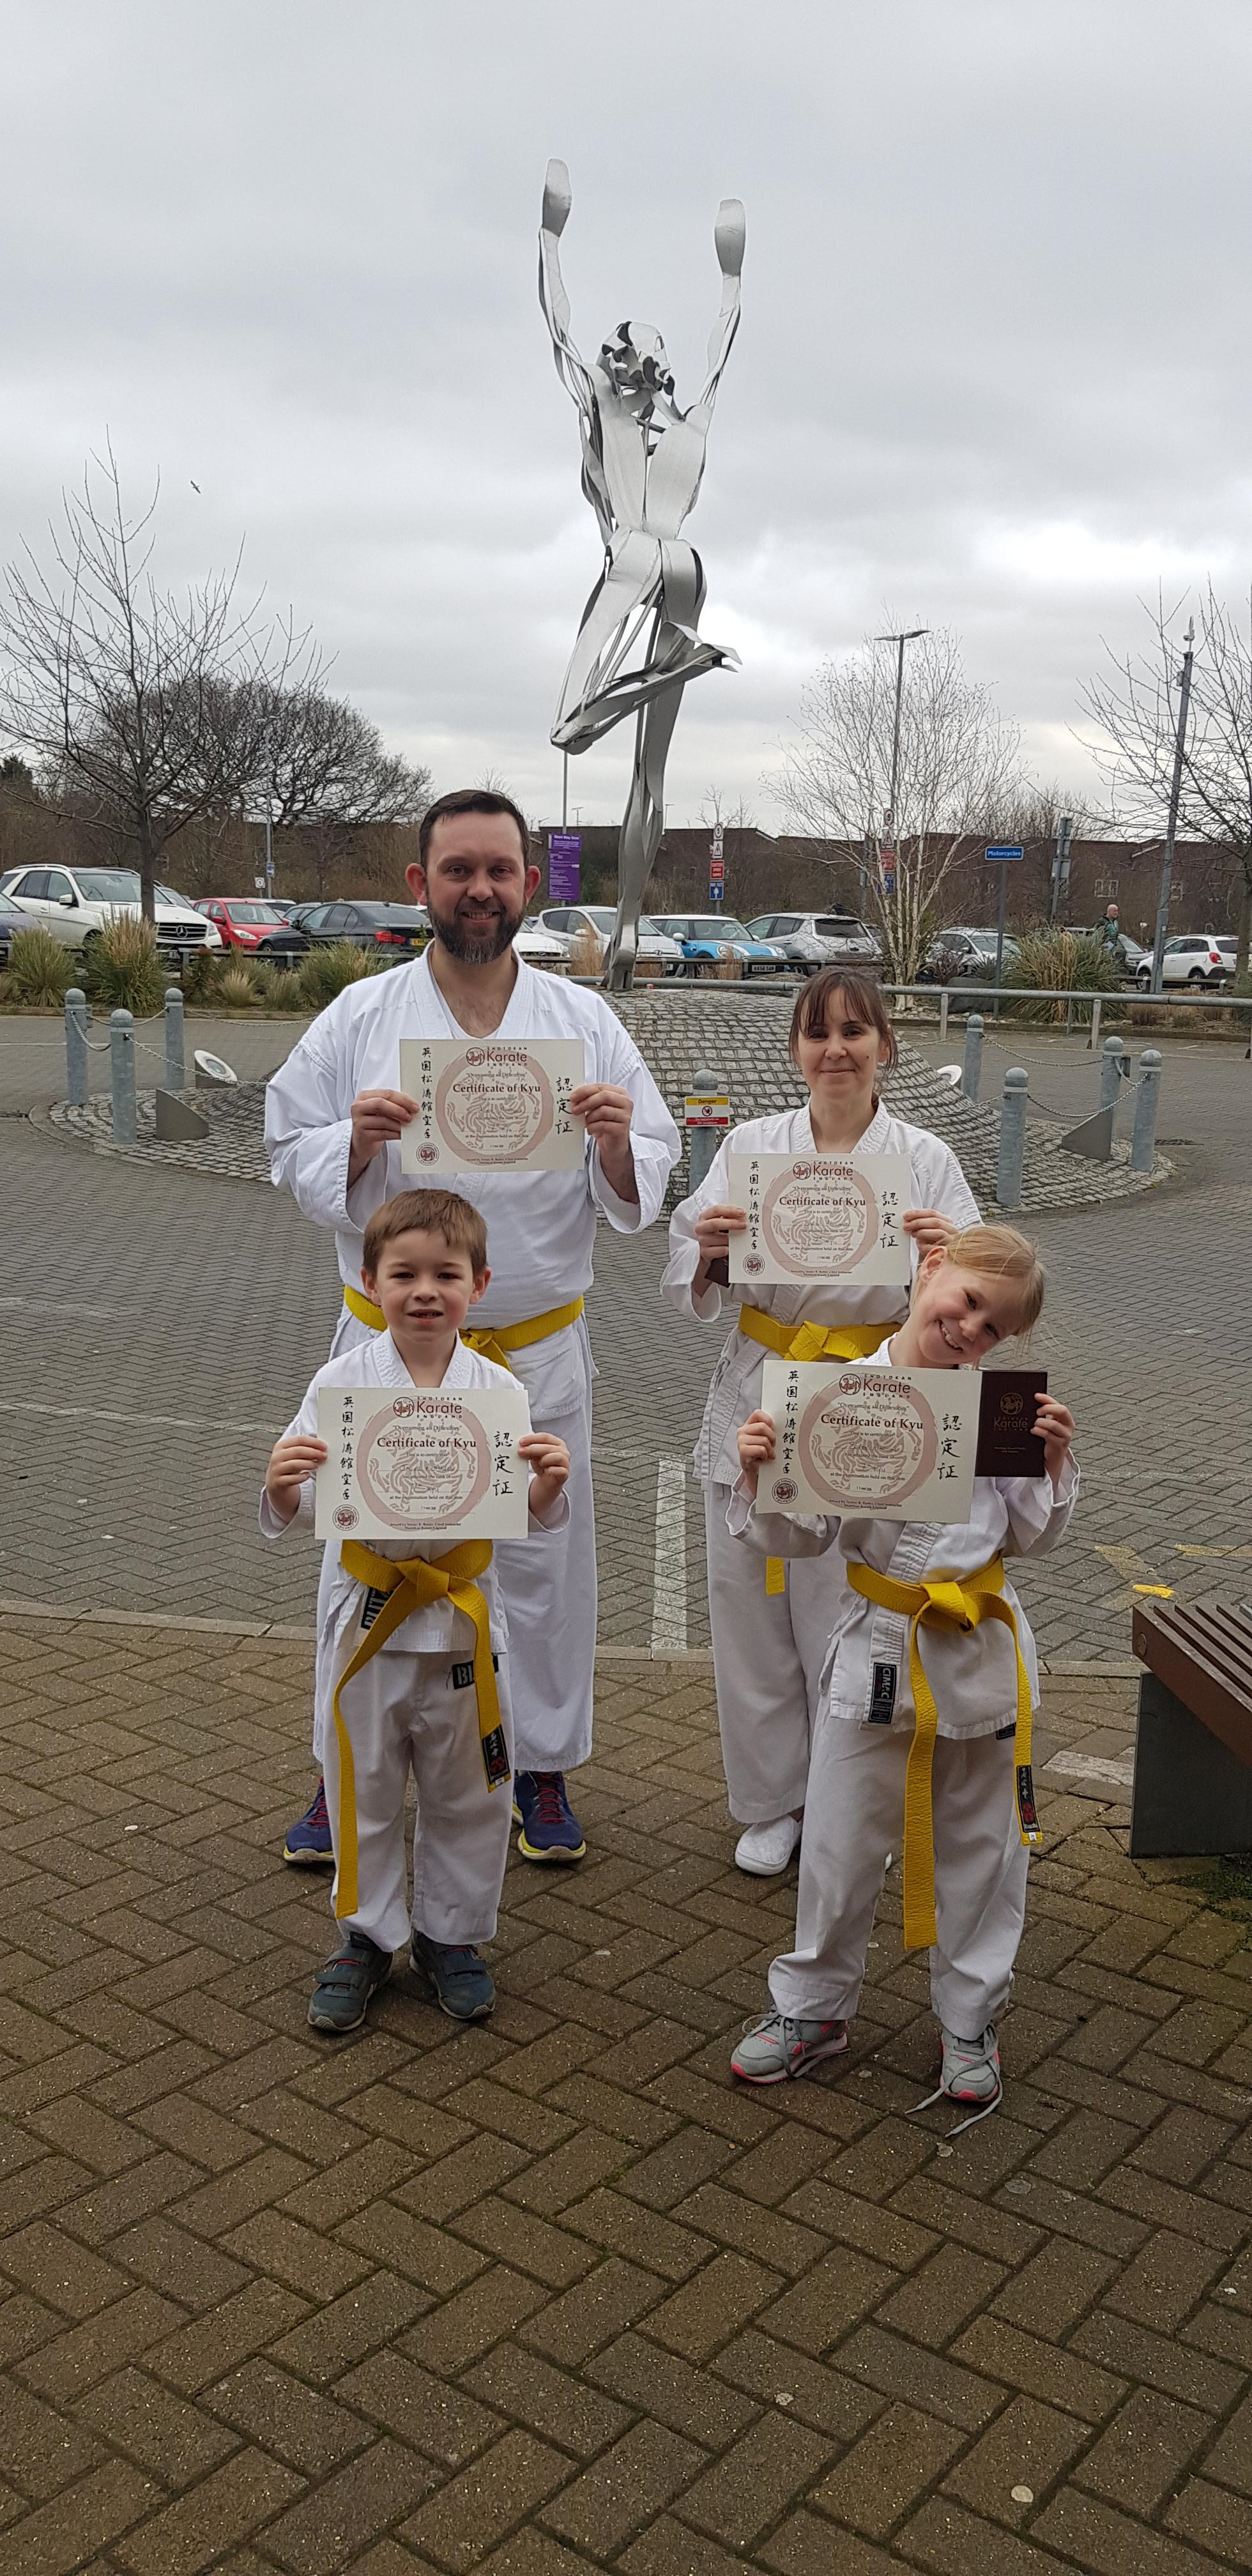 Sun 15th March 2020 Gradings